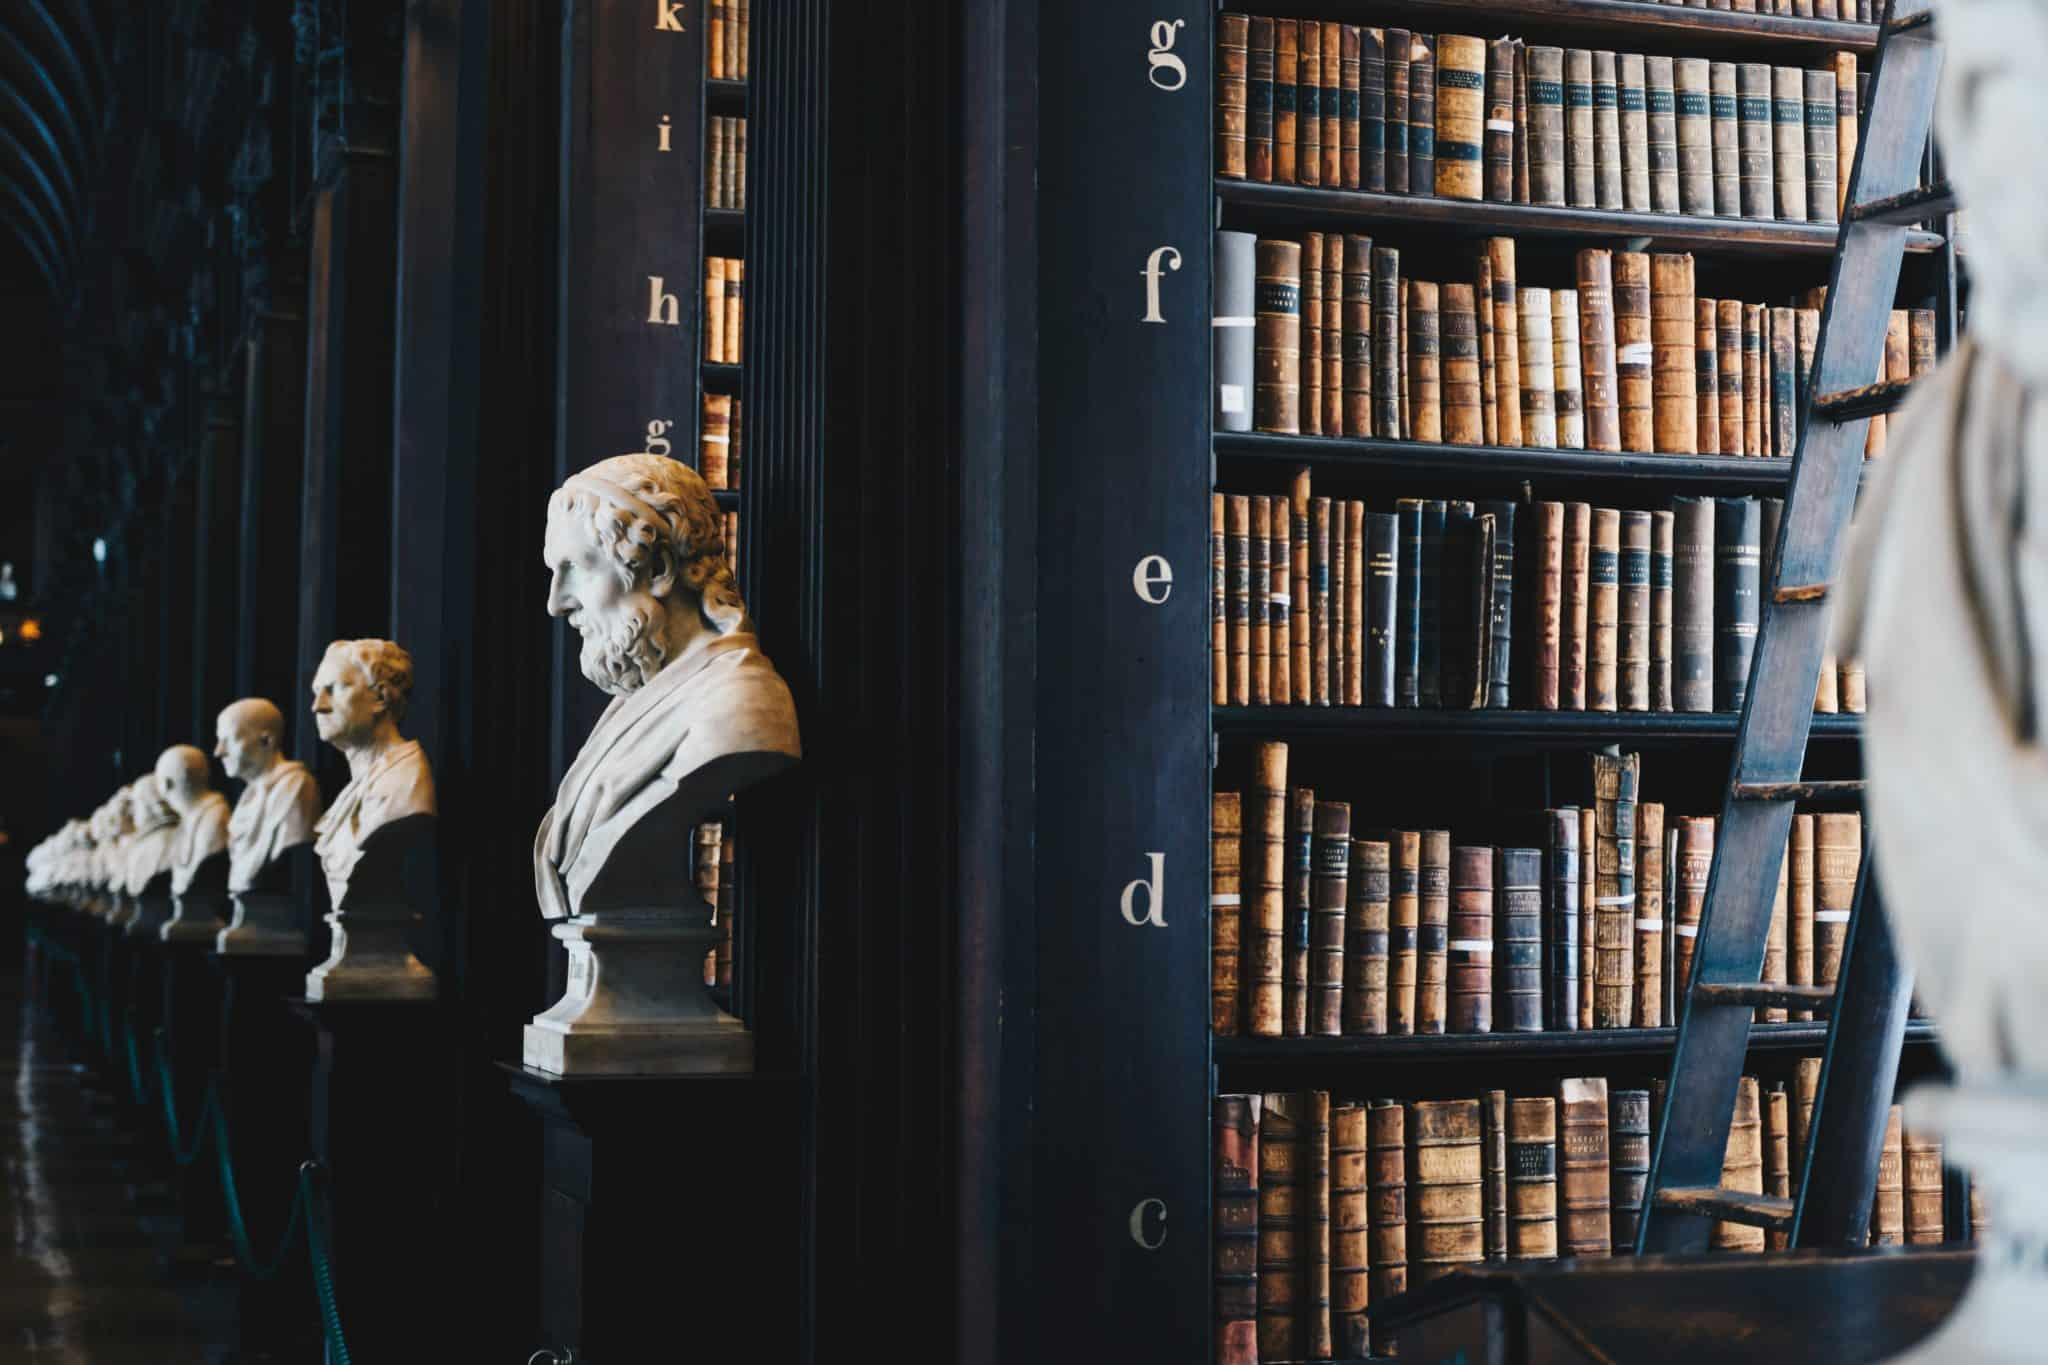 Library books - maths and history